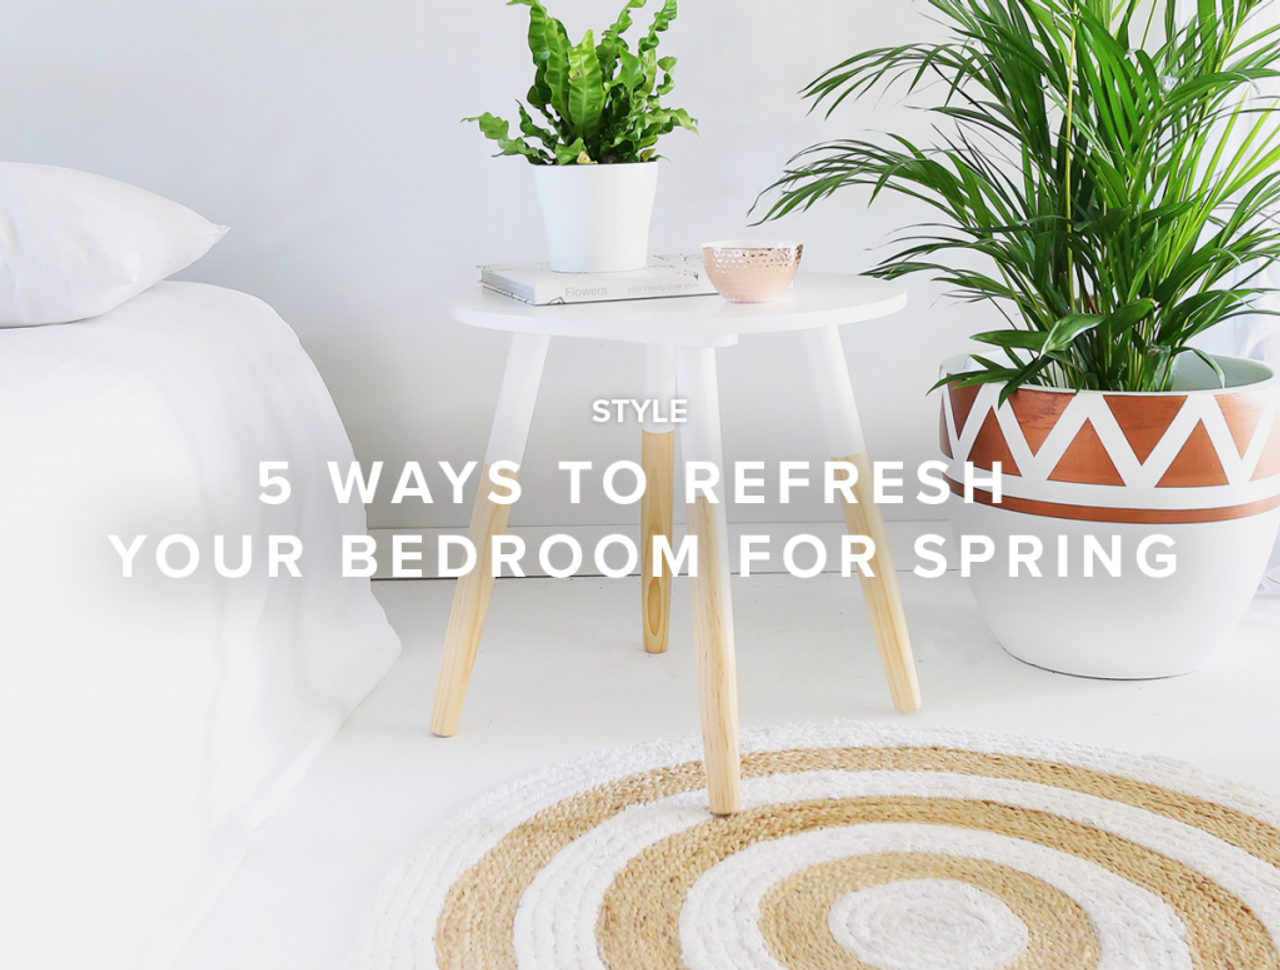 5 Ways to Refresh your Bedroom for Spring